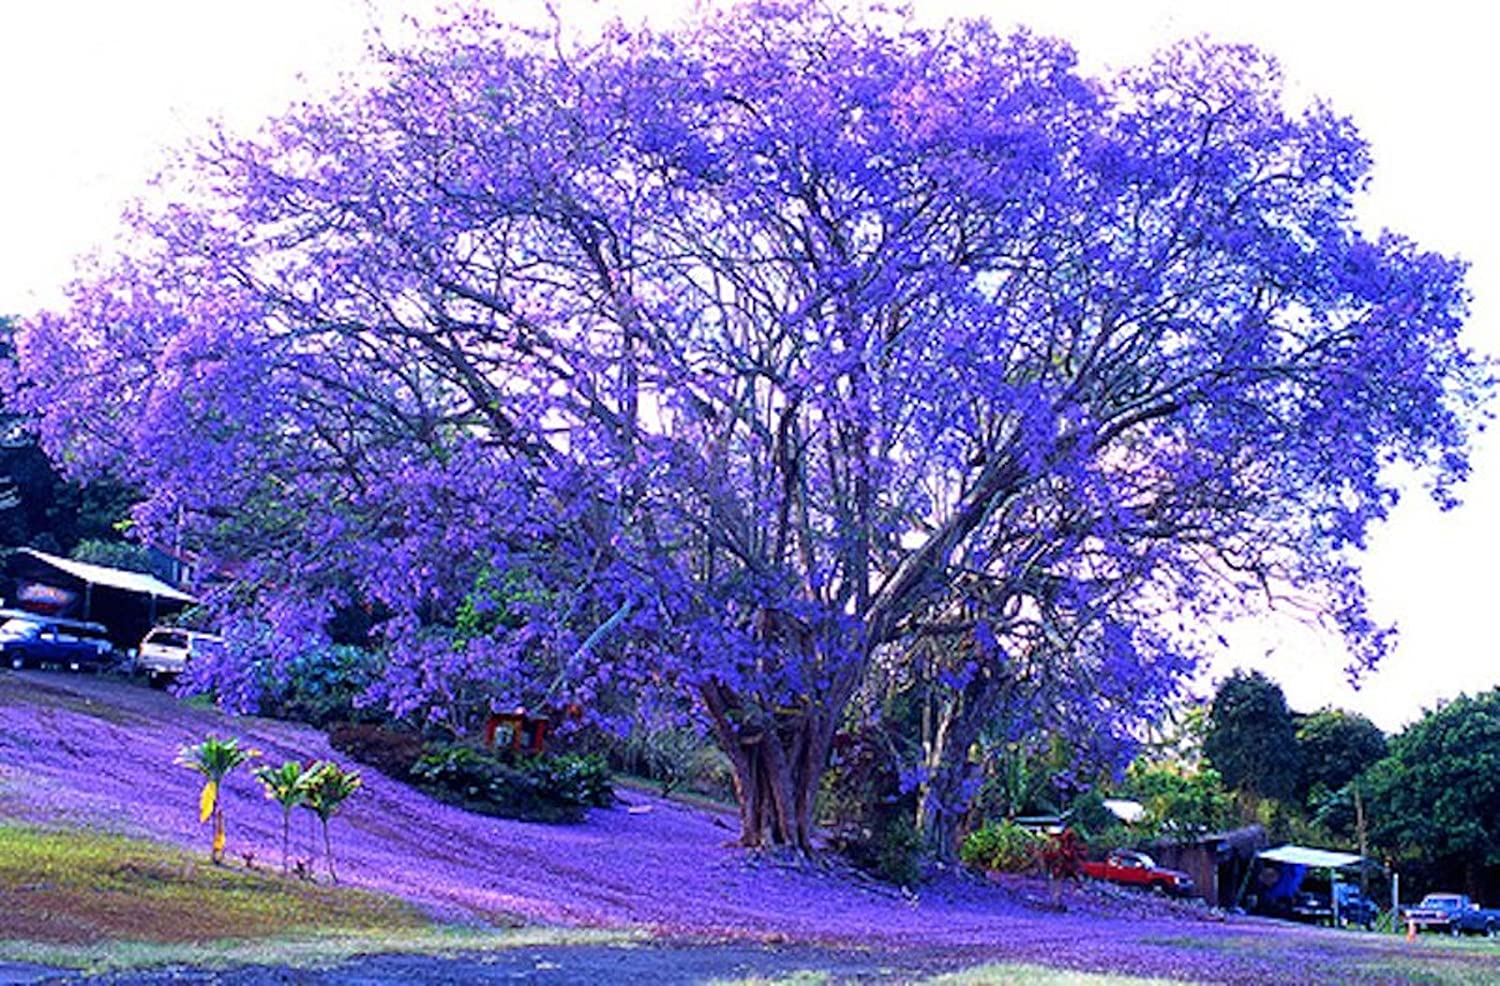 Mallkerala 50 seeds of neeli gulmohur blue jacaranda jacaranda mallkerala 50 seeds of neeli gulmohur blue jacaranda jacaranda mimosifolia beautiful flowering venue tree for growing sowing amazon garden izmirmasajfo